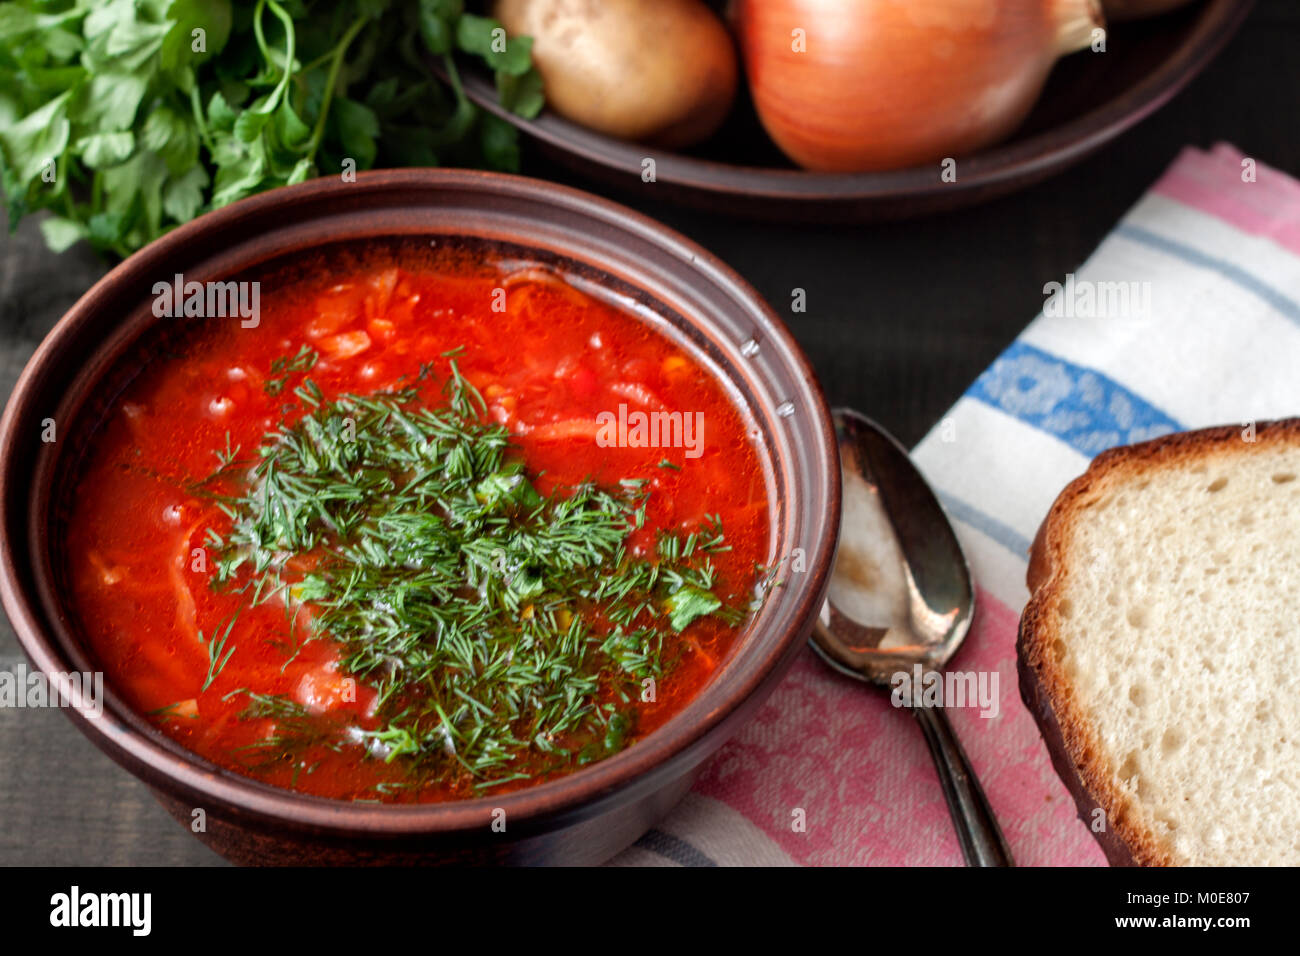 Red borsch. Ukrainian food. - Stock Image